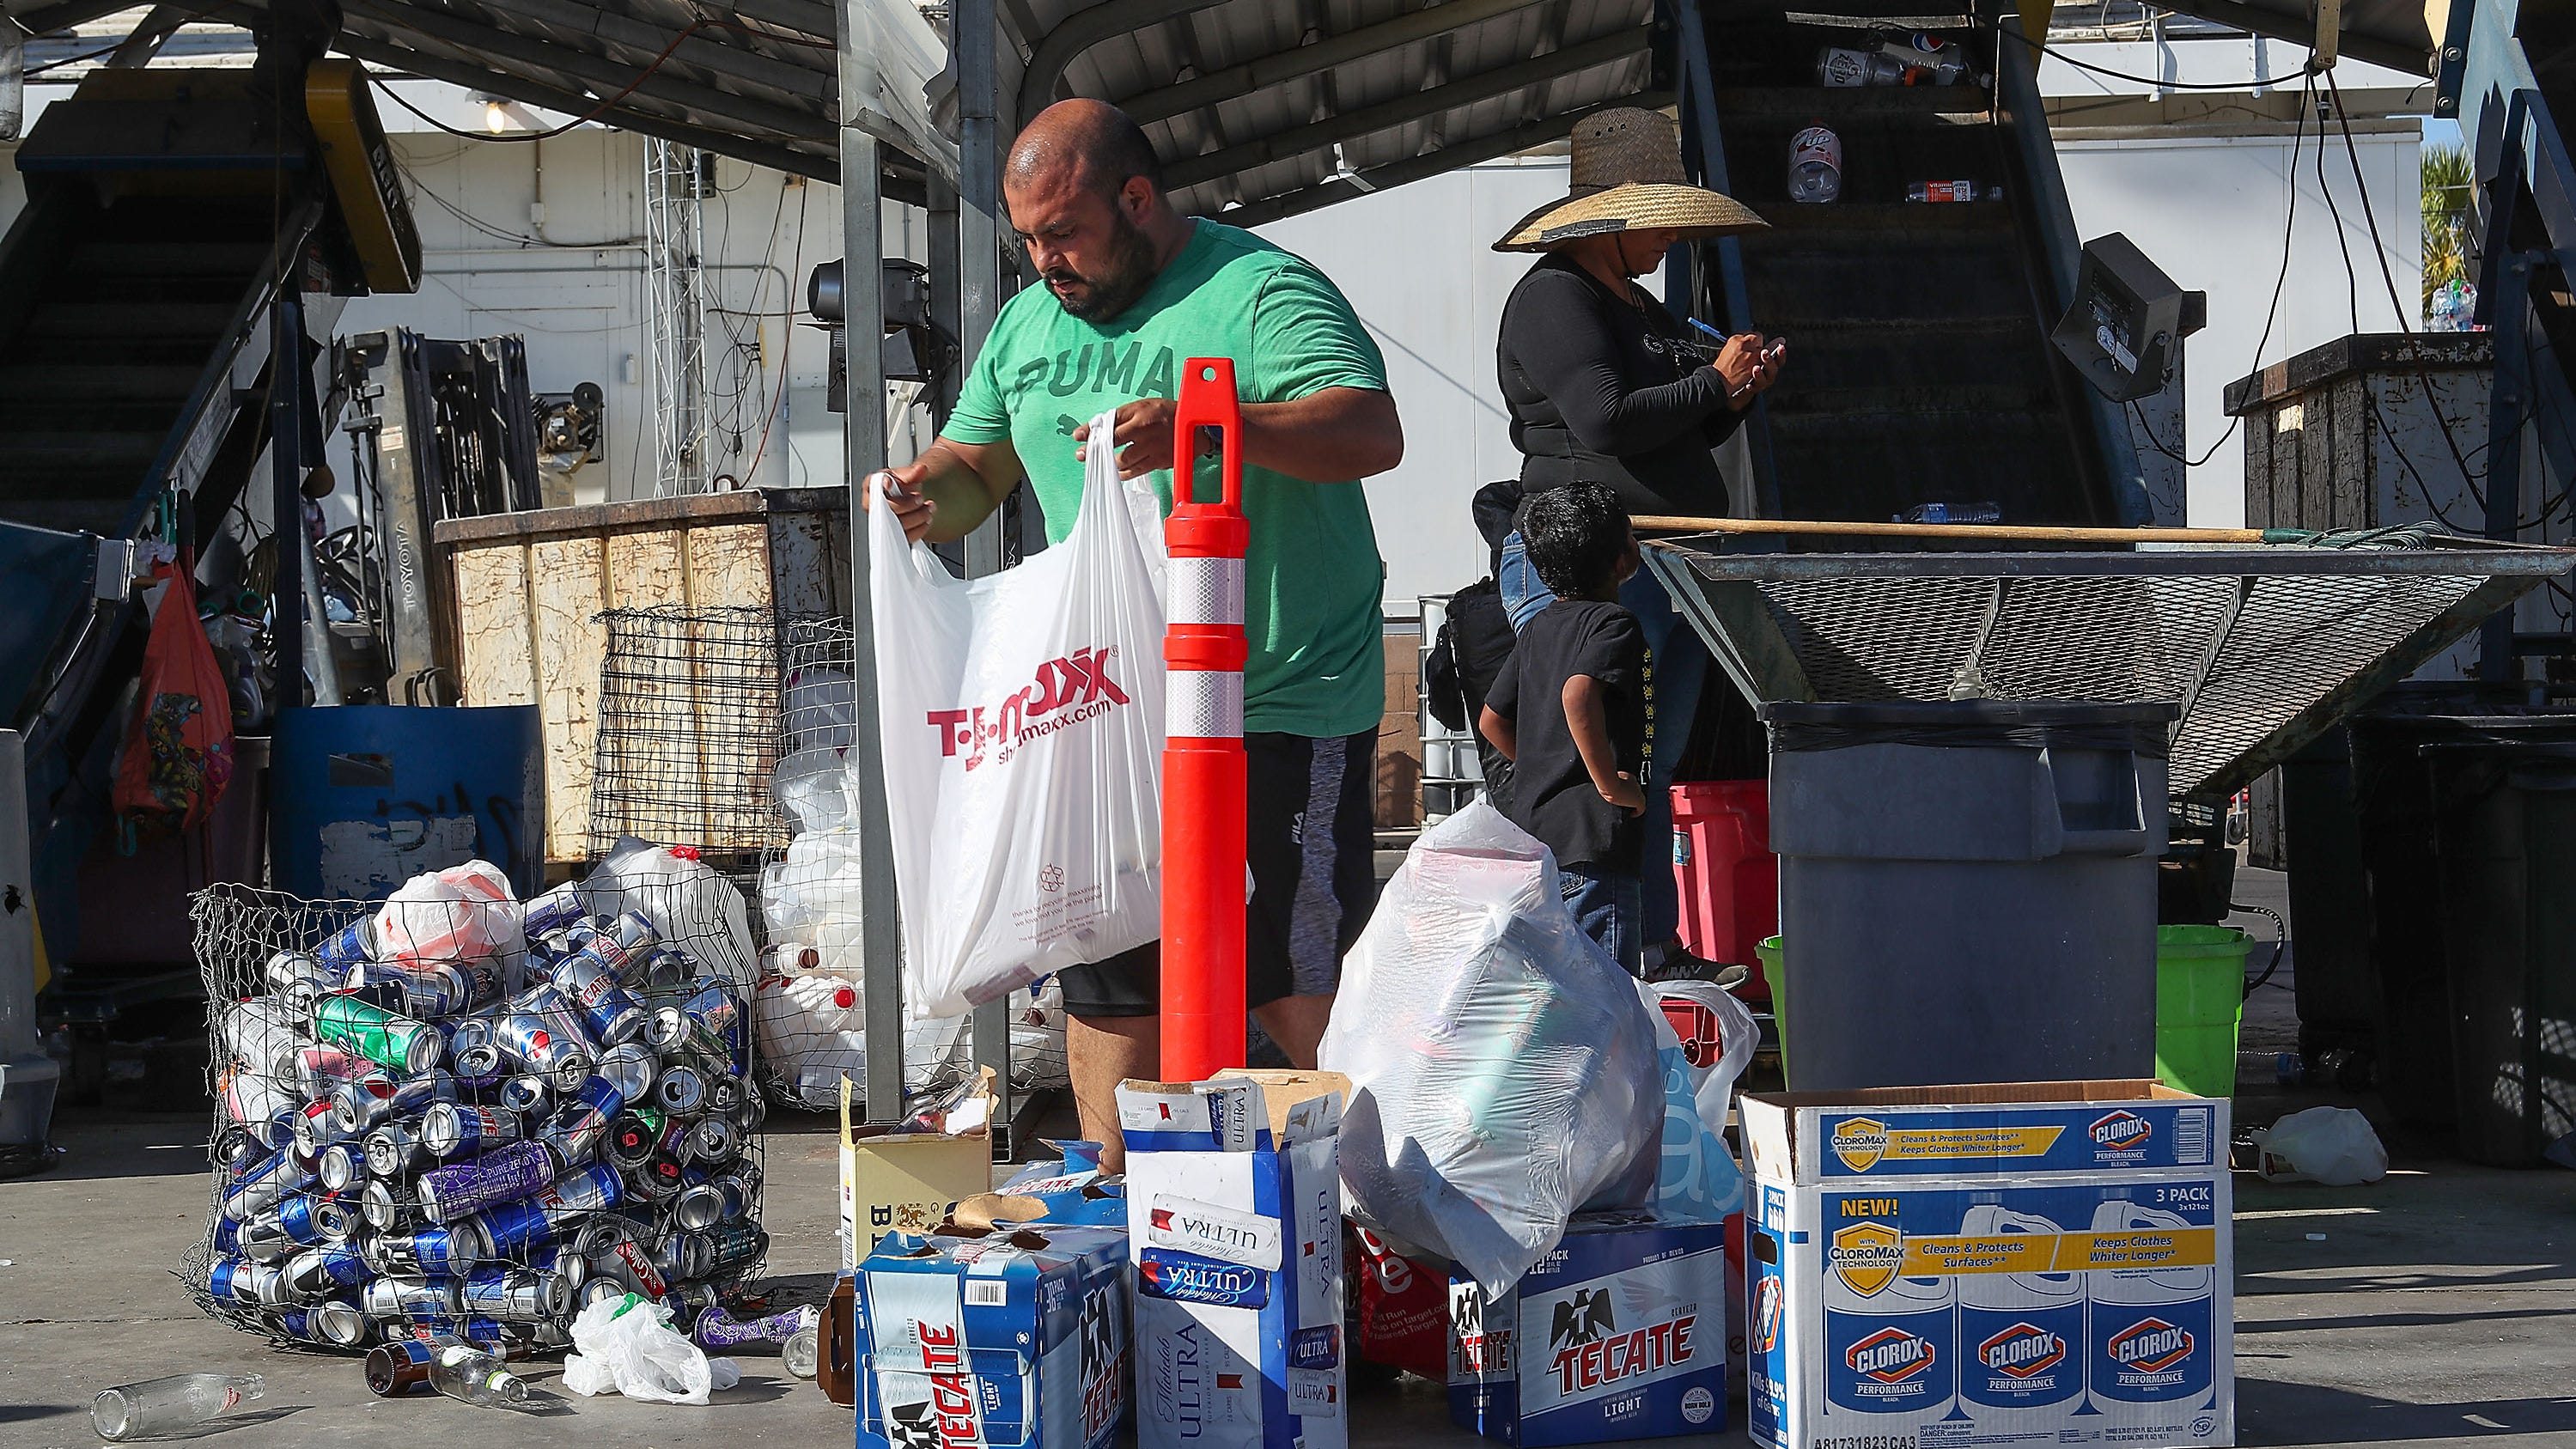 Homelessness in the valley: Closure of recycling centers impacts homeless community